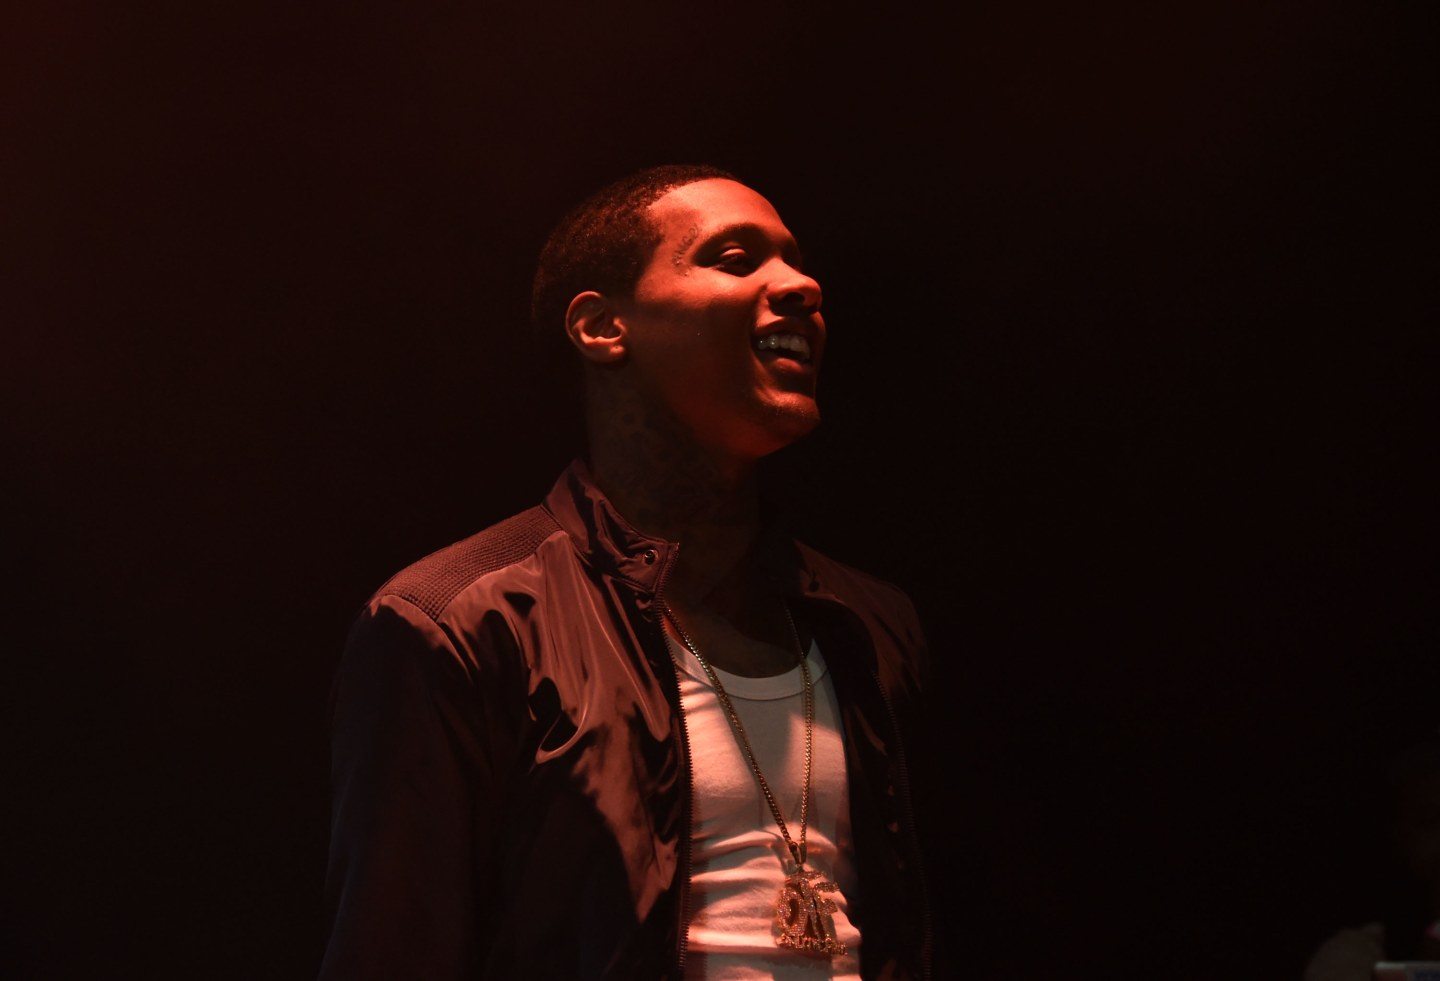 Lil Durk Was An Underdog For Years, But His Album Actually Came Out